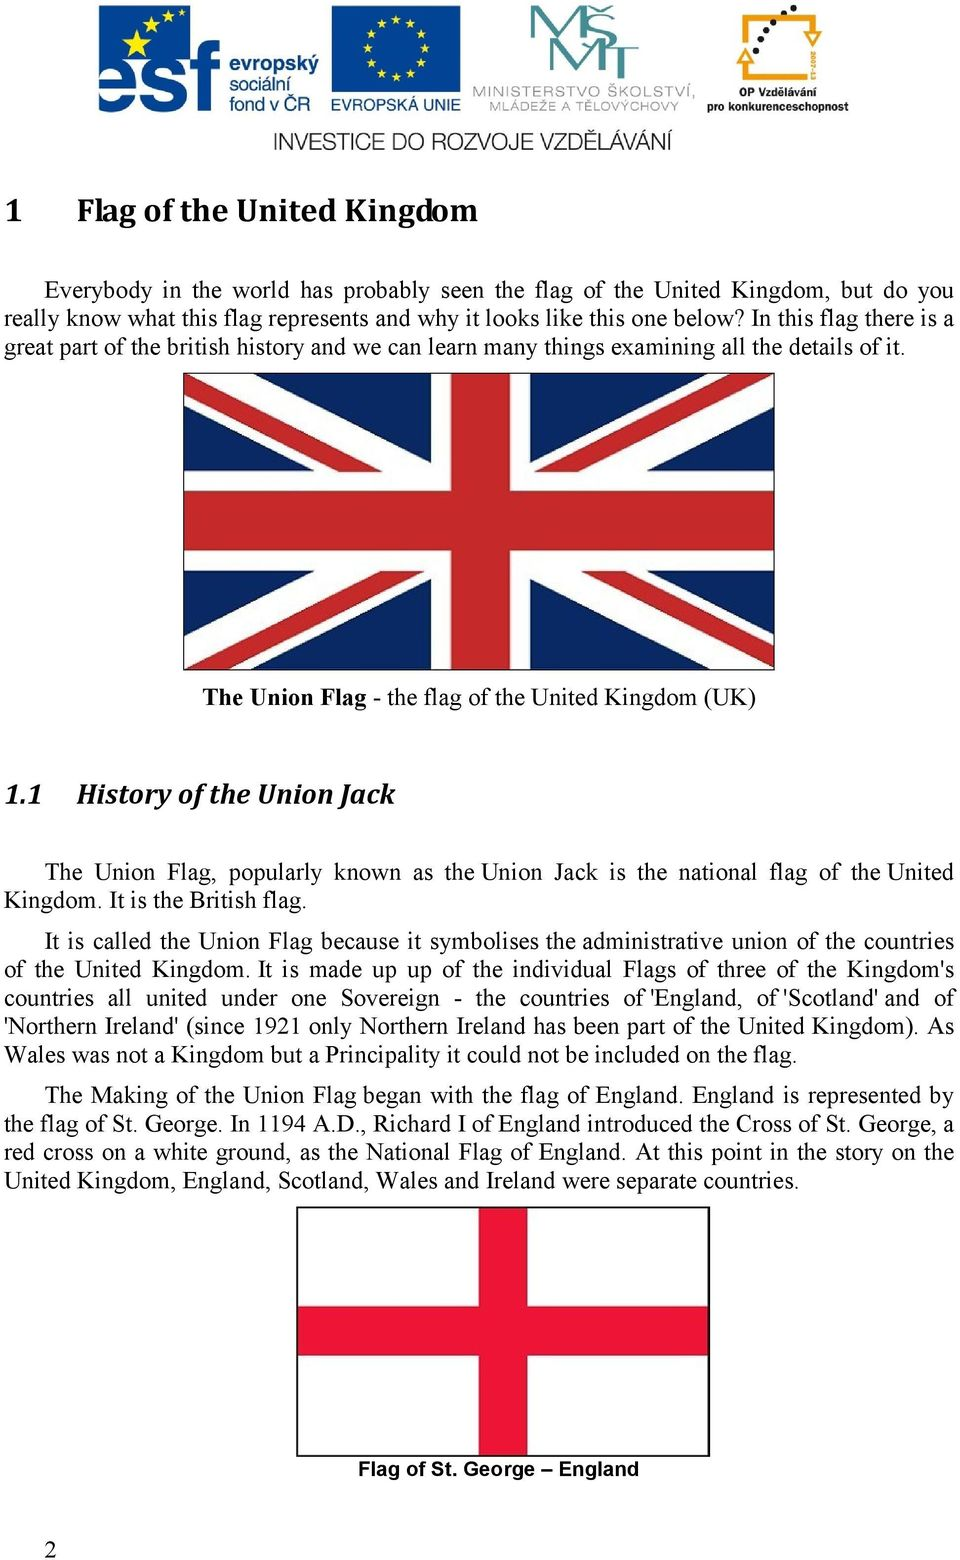 1 History of the Union Jack The Union Flag, popularly known as the Union Jack is the national flag of the United Kingdom. It is the British flag.